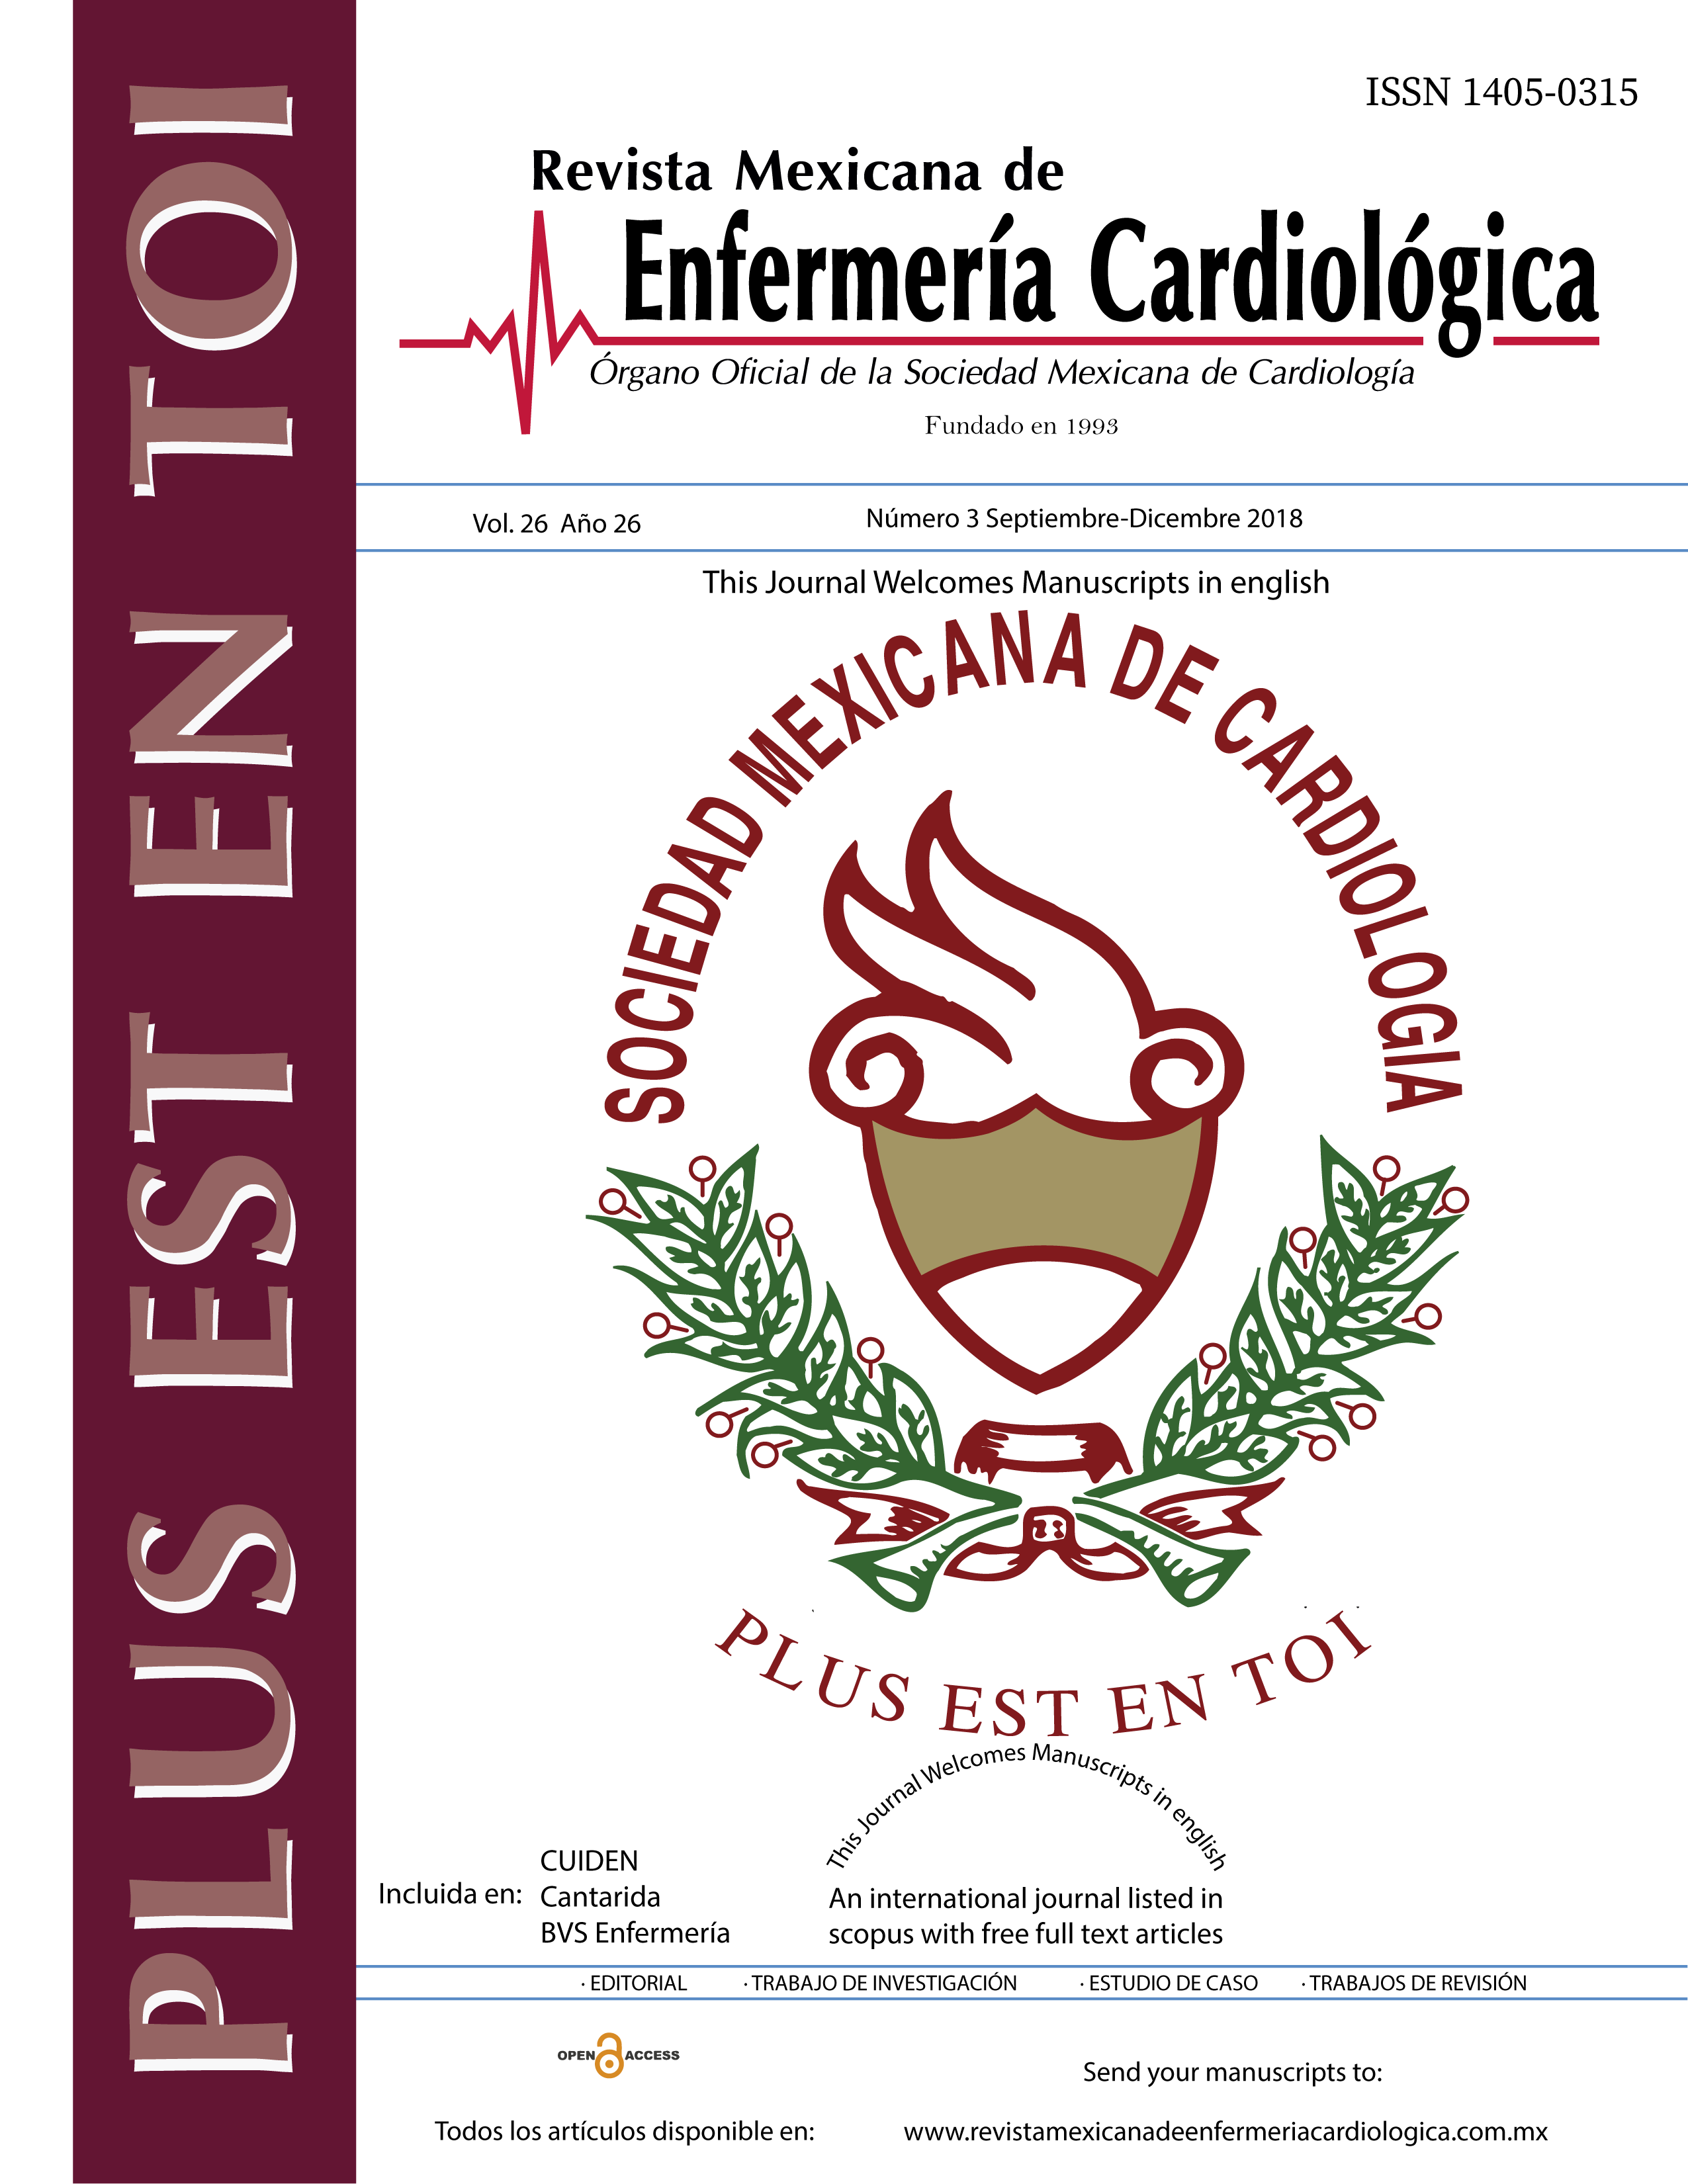 Rev Mex Enferm Cardiol 2018;26(3)69-109